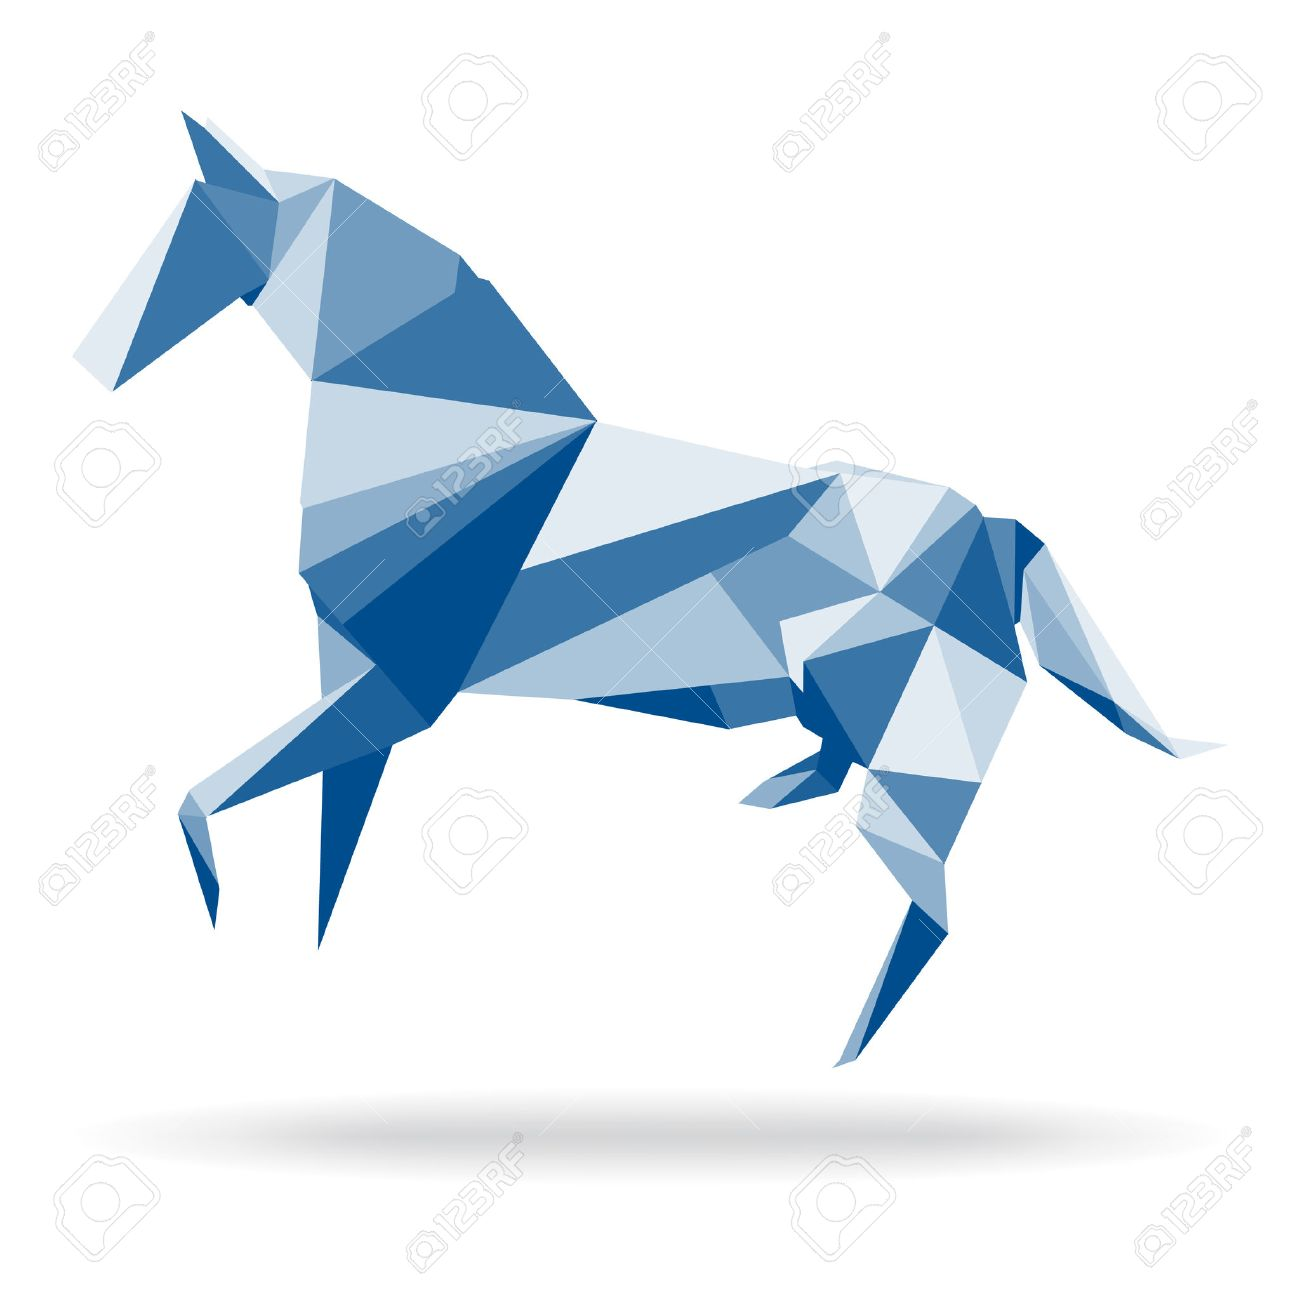 Horse Polygon Abstract Vector Paper Origami Illustration Of In Style